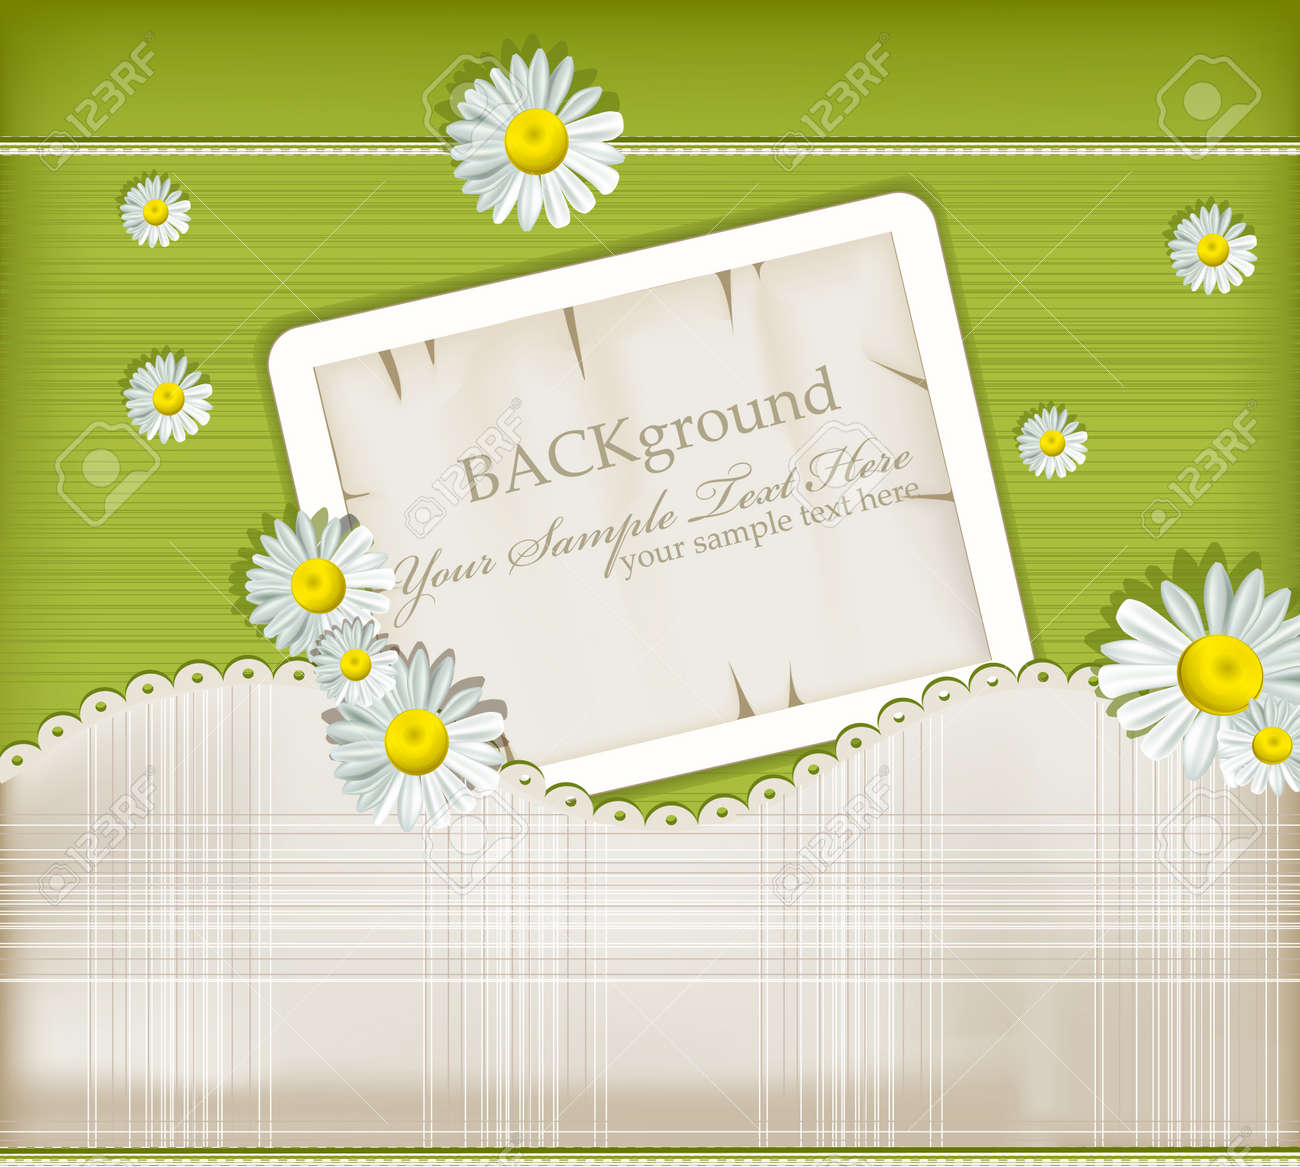 Vector greeting card on vintage background with daisies Stock Vector - 9103195